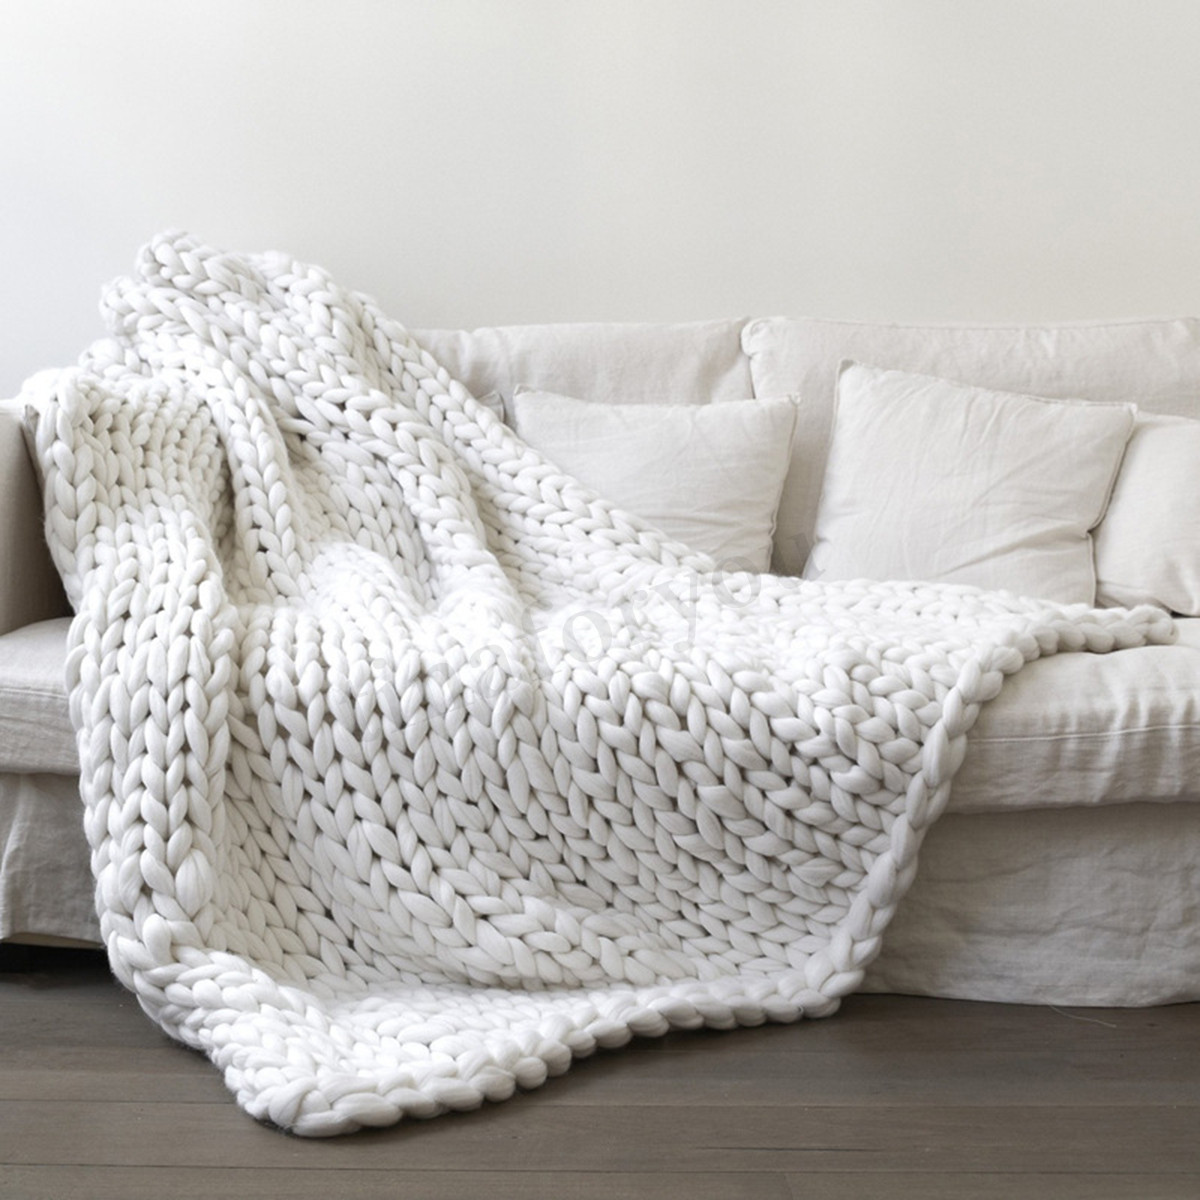 Bulky Yarn Blanket Unique soft Warm Handmade Chunky Knit Blanket Thick Yarn Of Lovely 50 Pictures Bulky Yarn Blanket